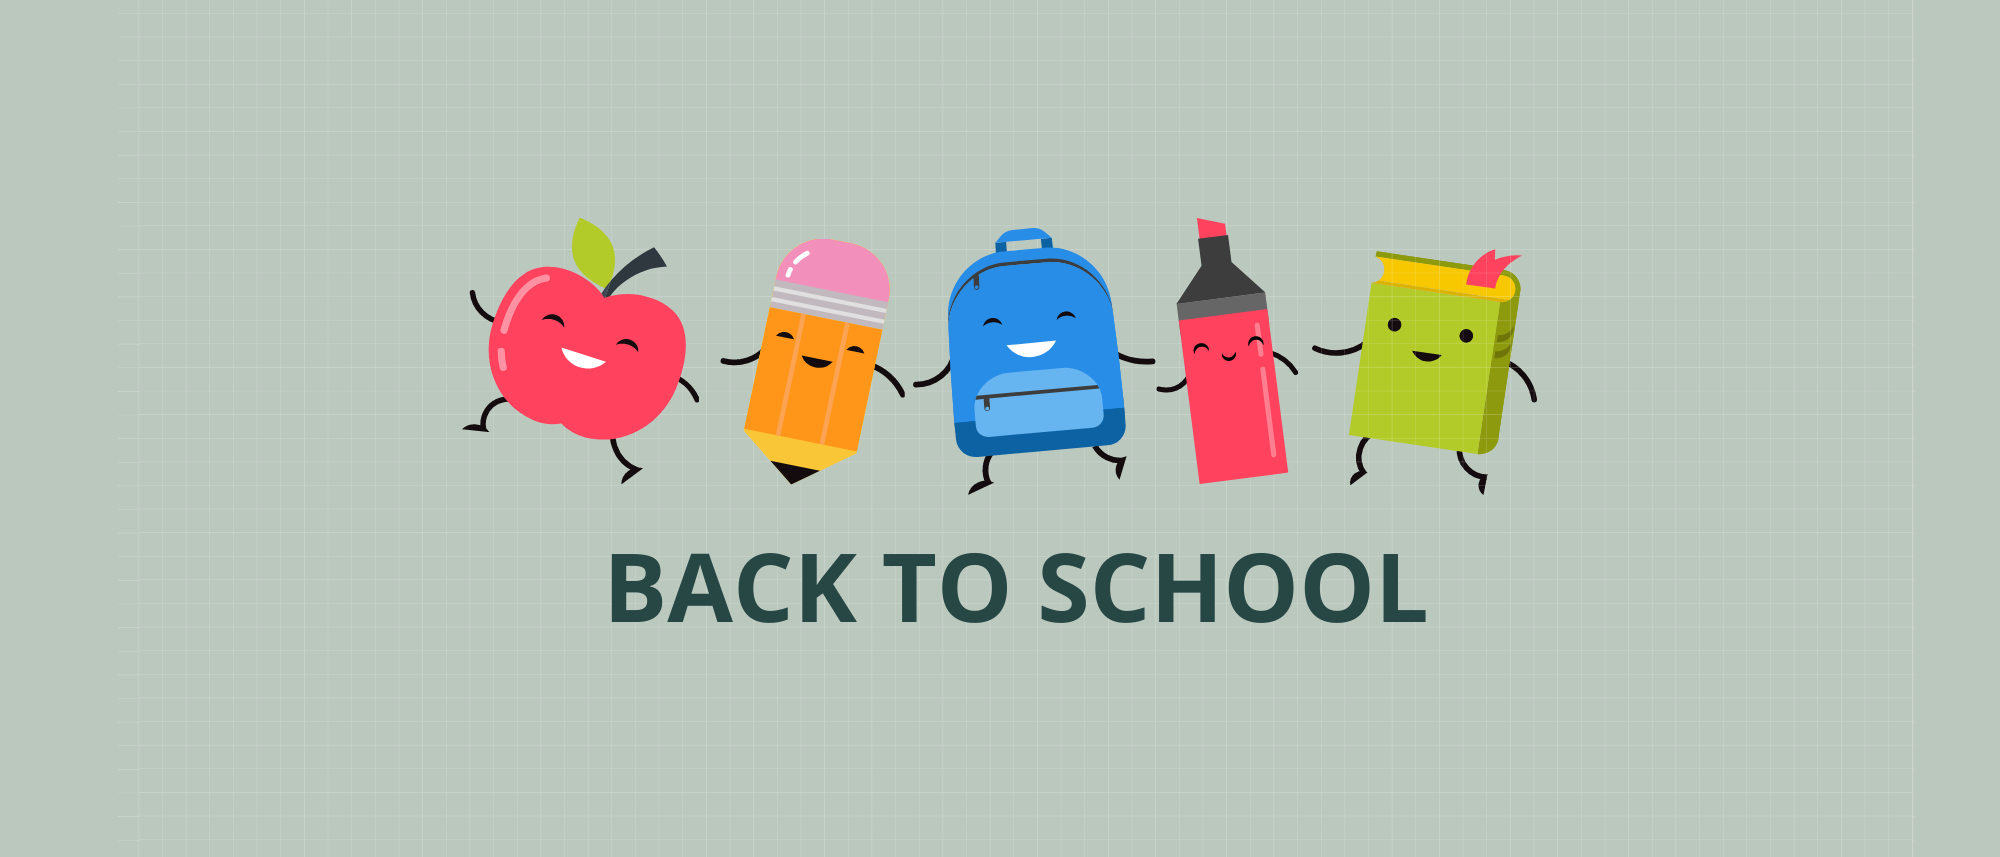 Back to school banner 2021